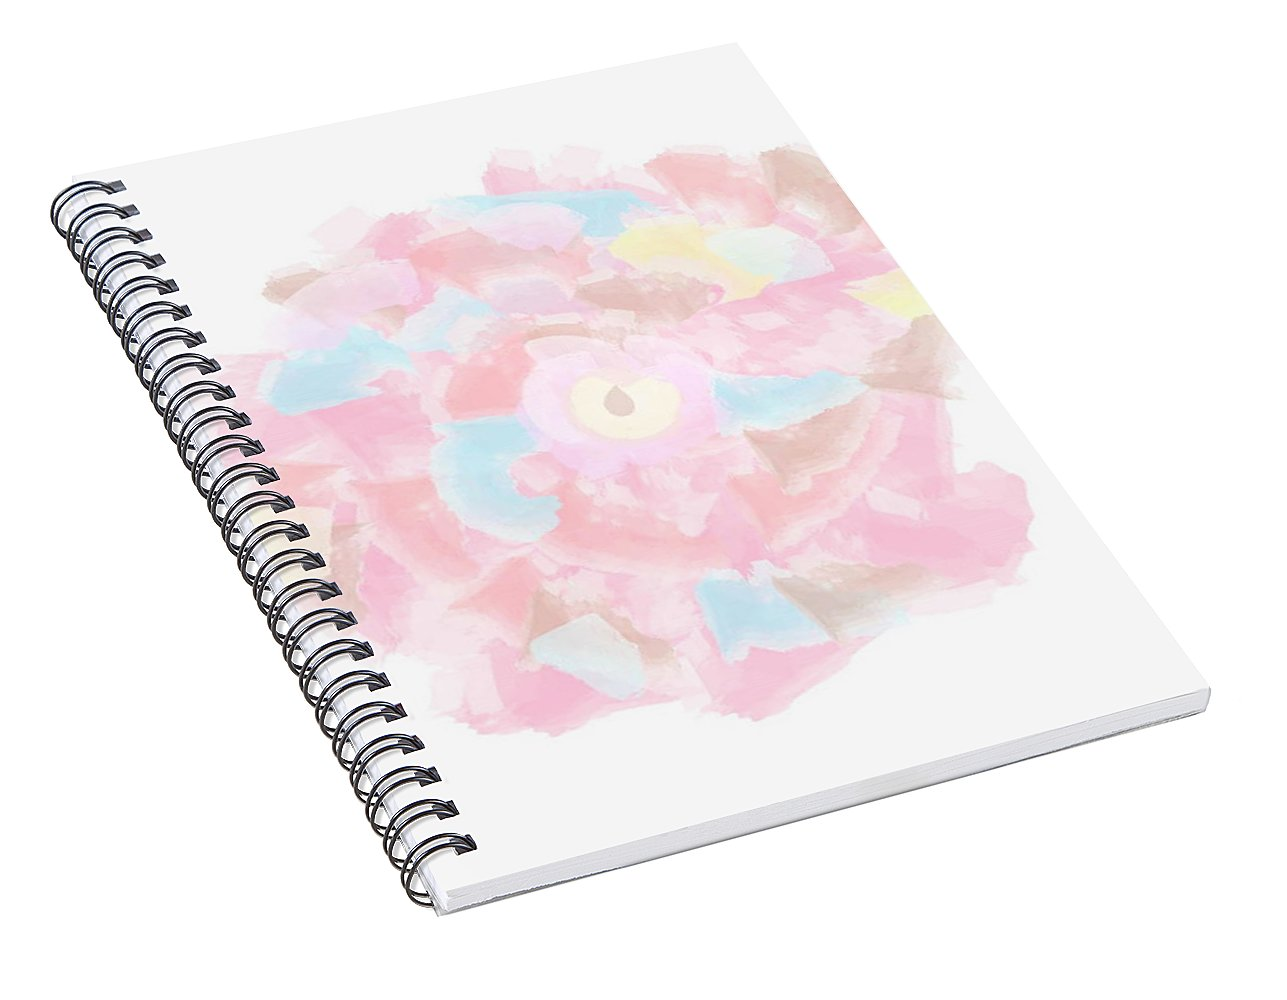 Flower Bouquet - Flower 3 of 3 - Spiral Notebook